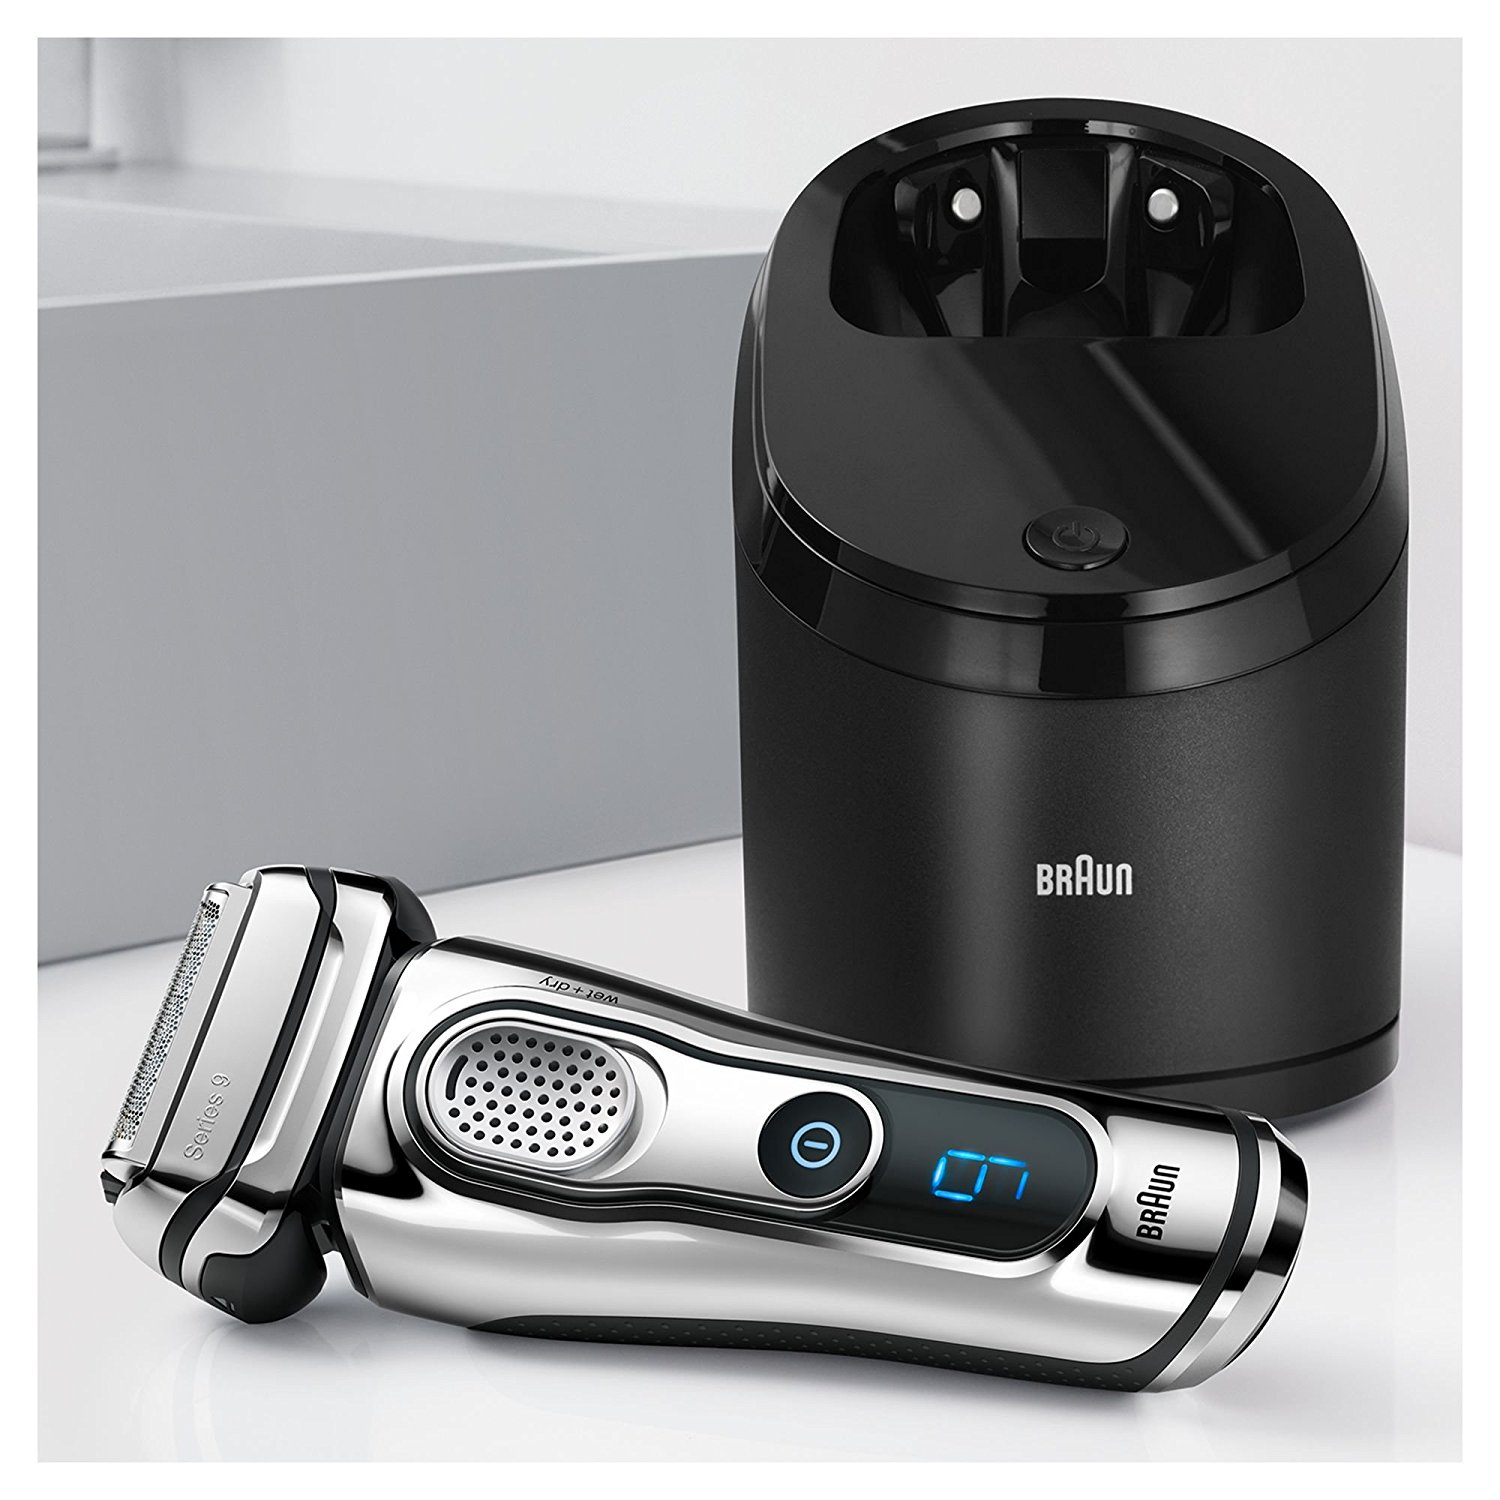 Braun 9296cc Wet & Dry Series 9